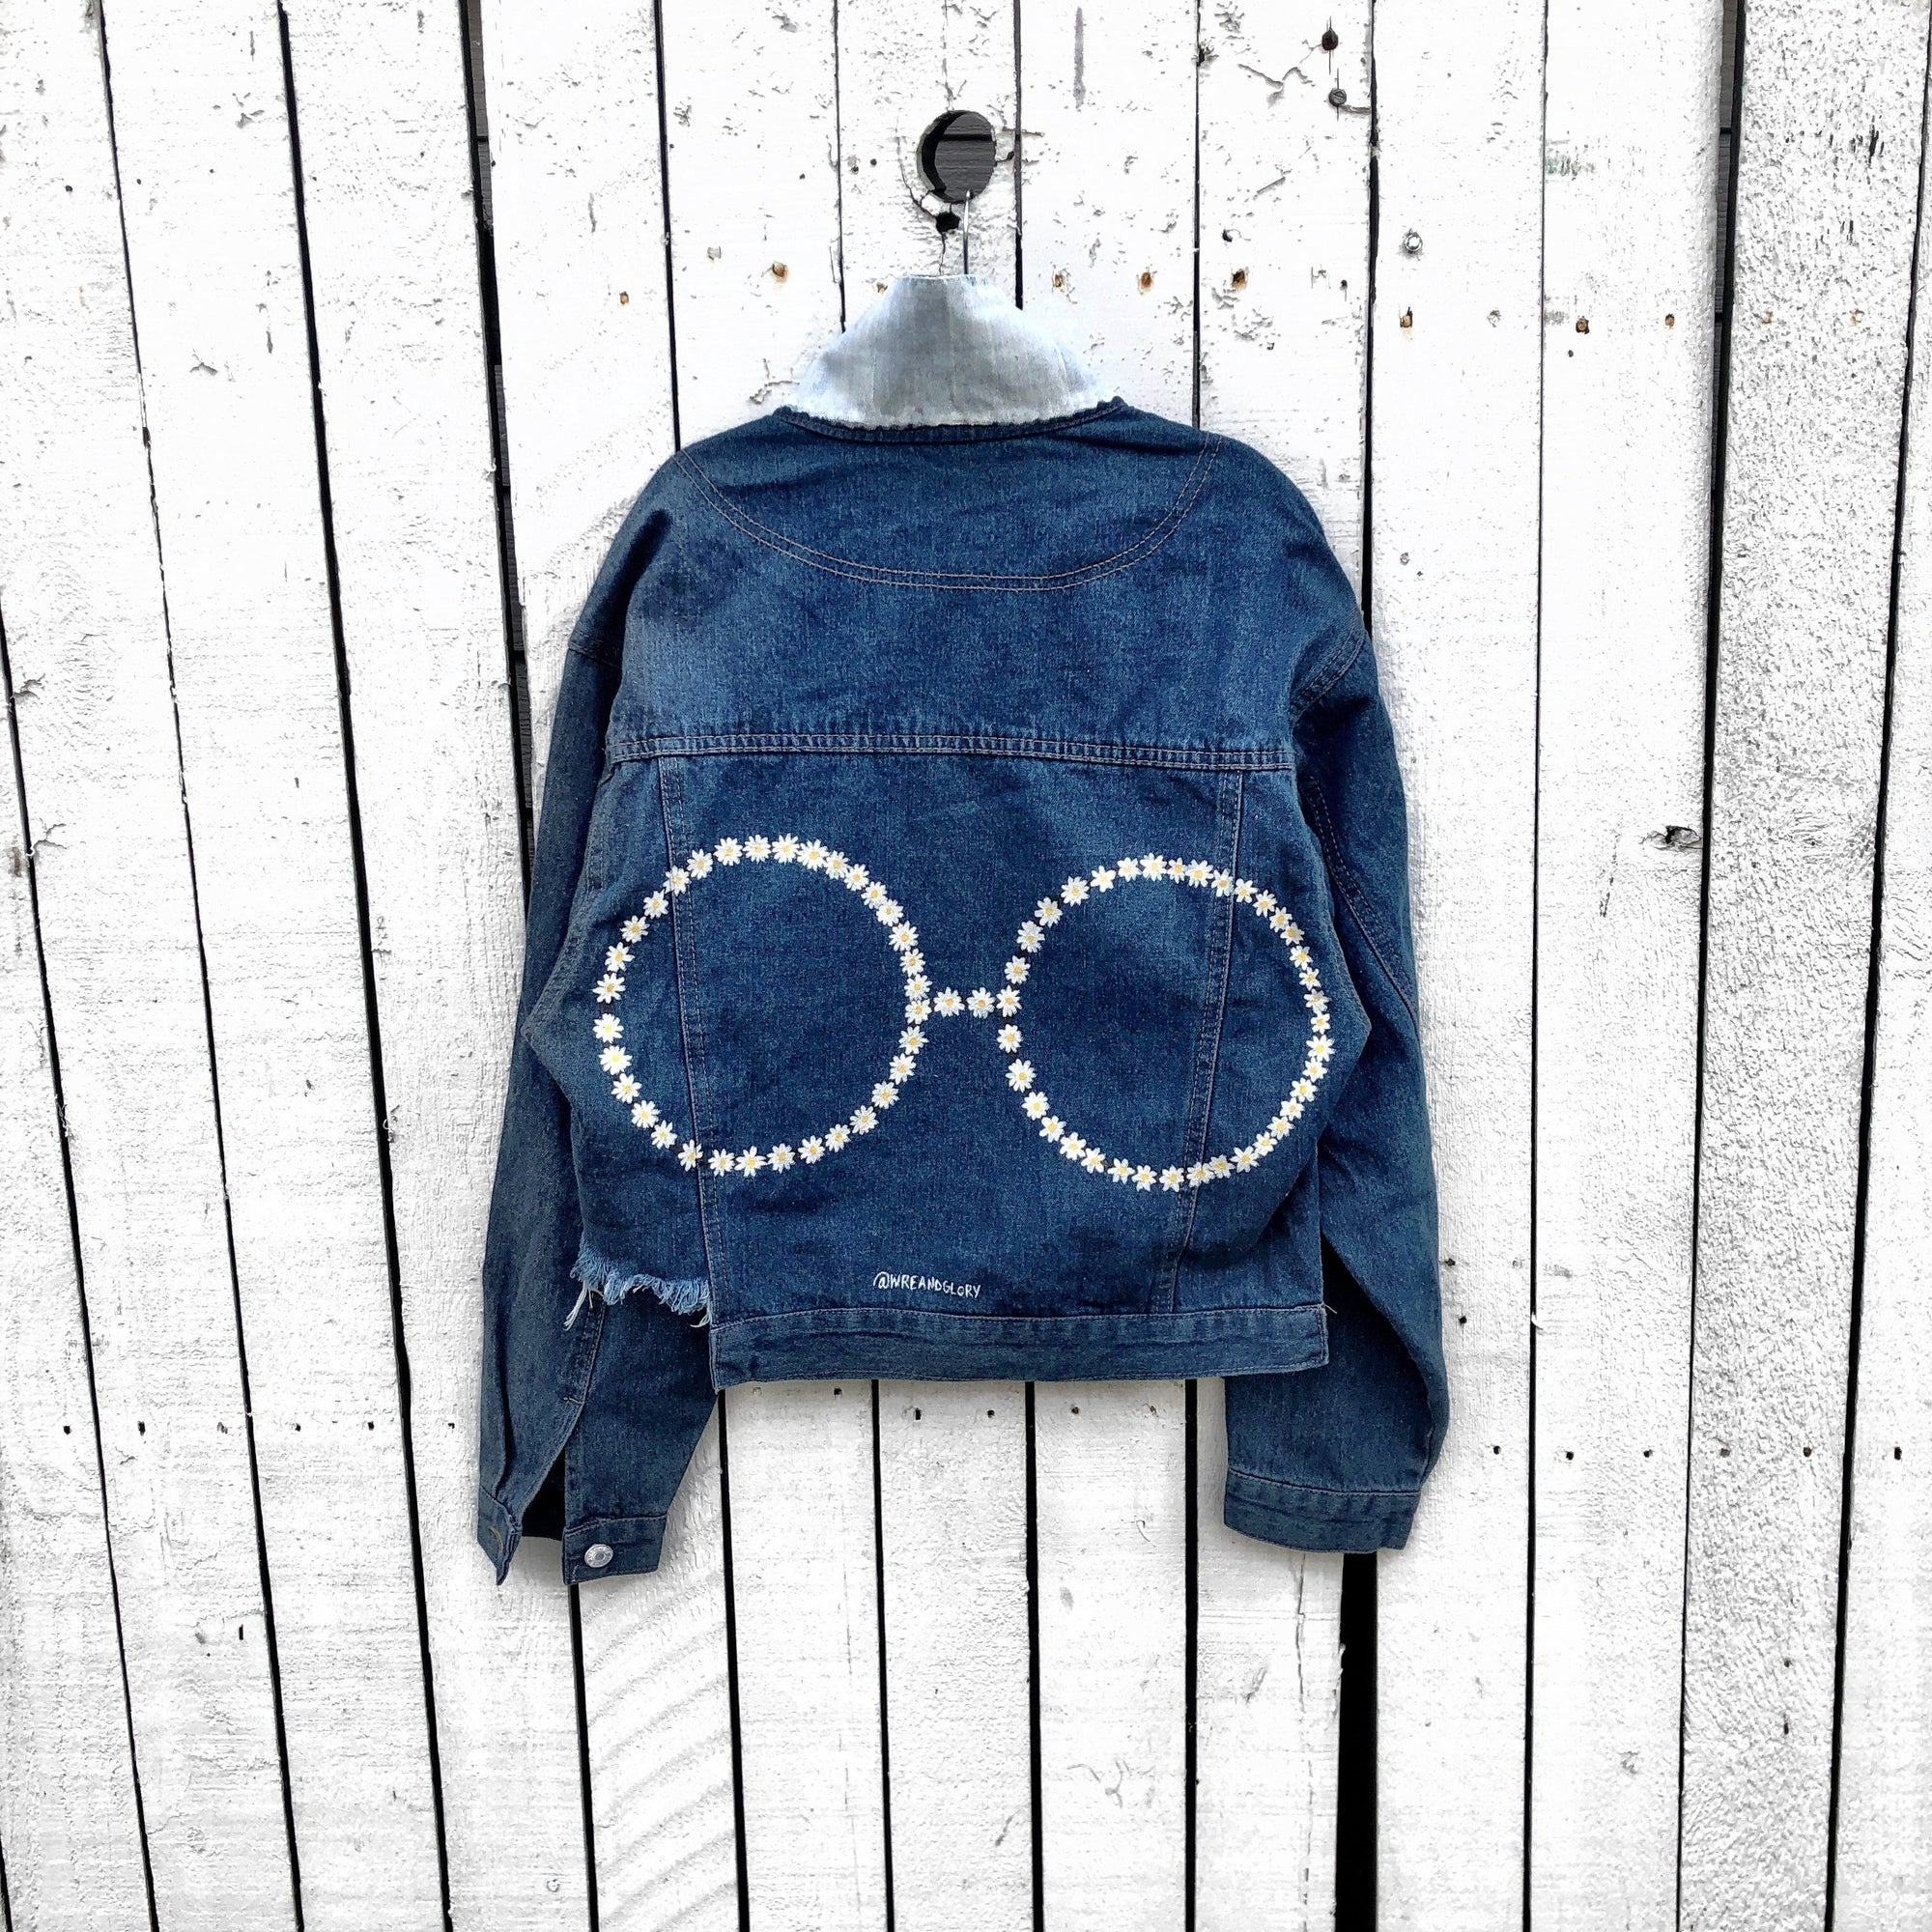 'DAISY SHADES' DENIM JACKET